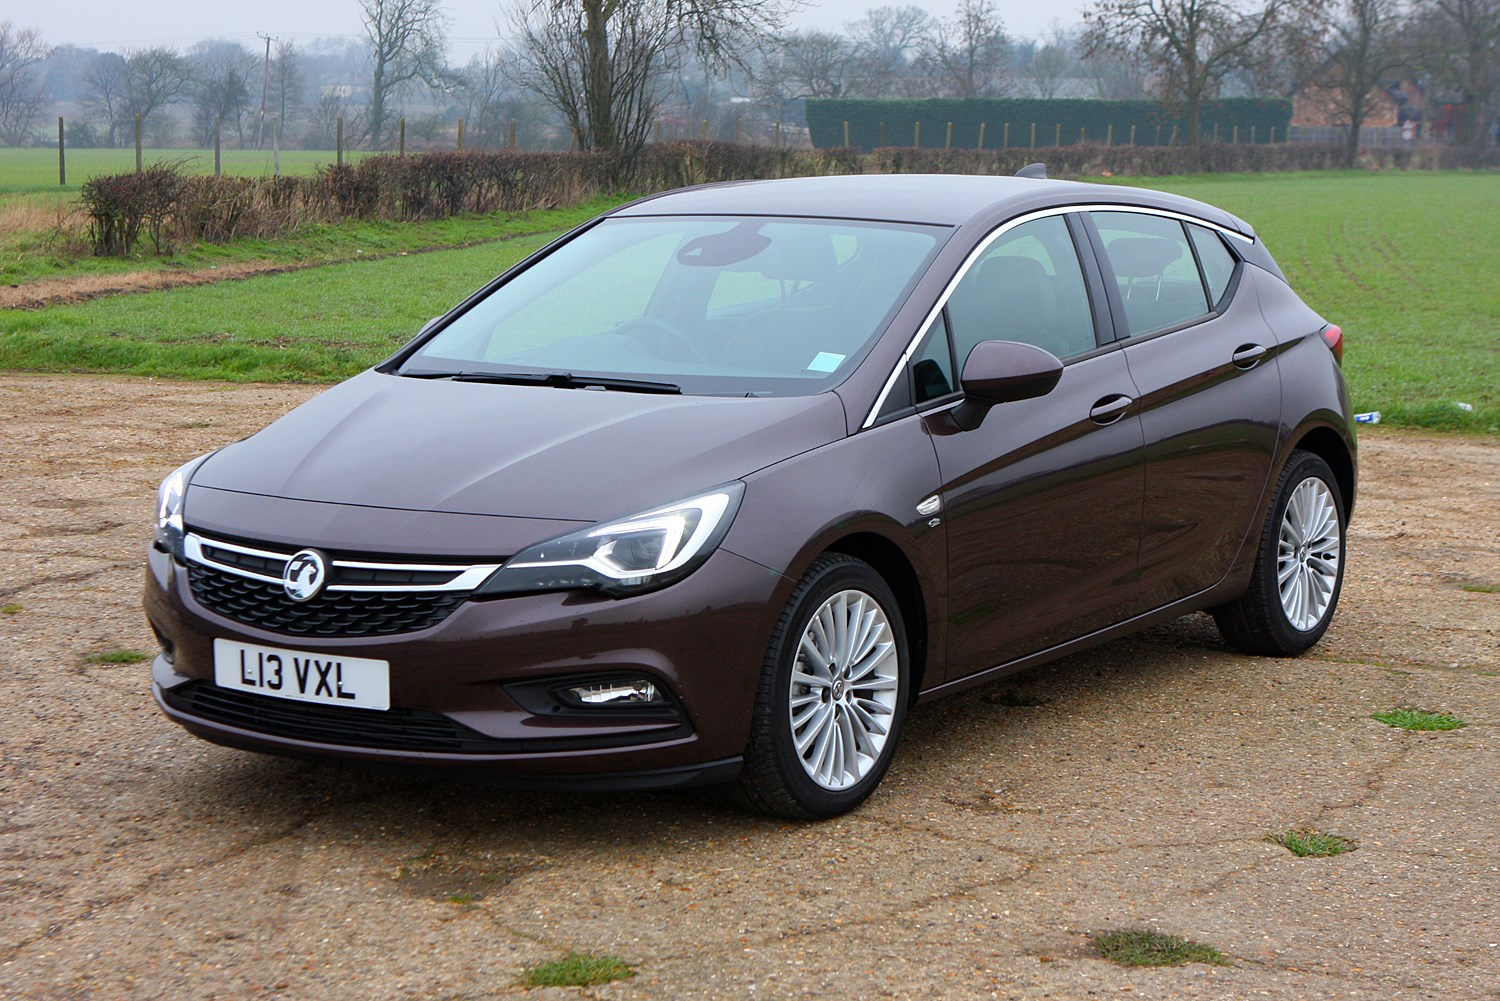 vauxhall astra hatchback 2015 photos parkers. Black Bedroom Furniture Sets. Home Design Ideas